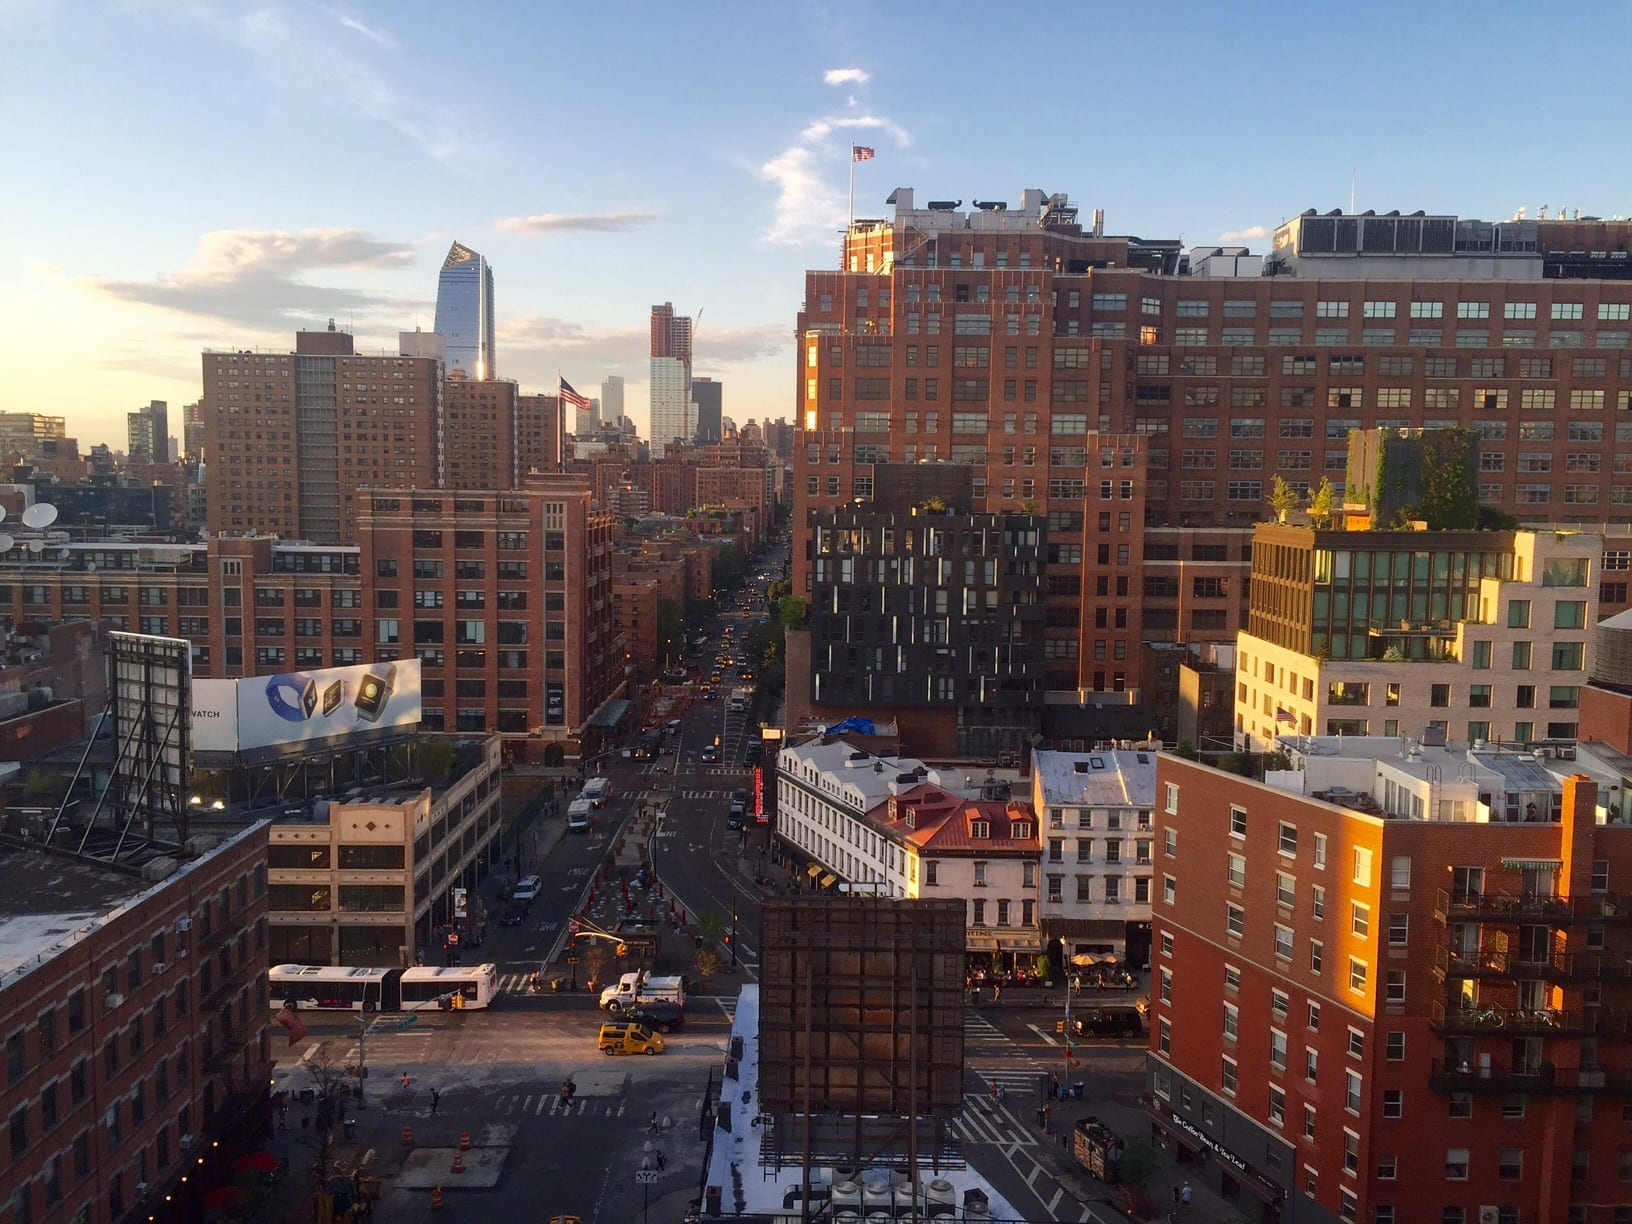 New York View from the Gansevoort